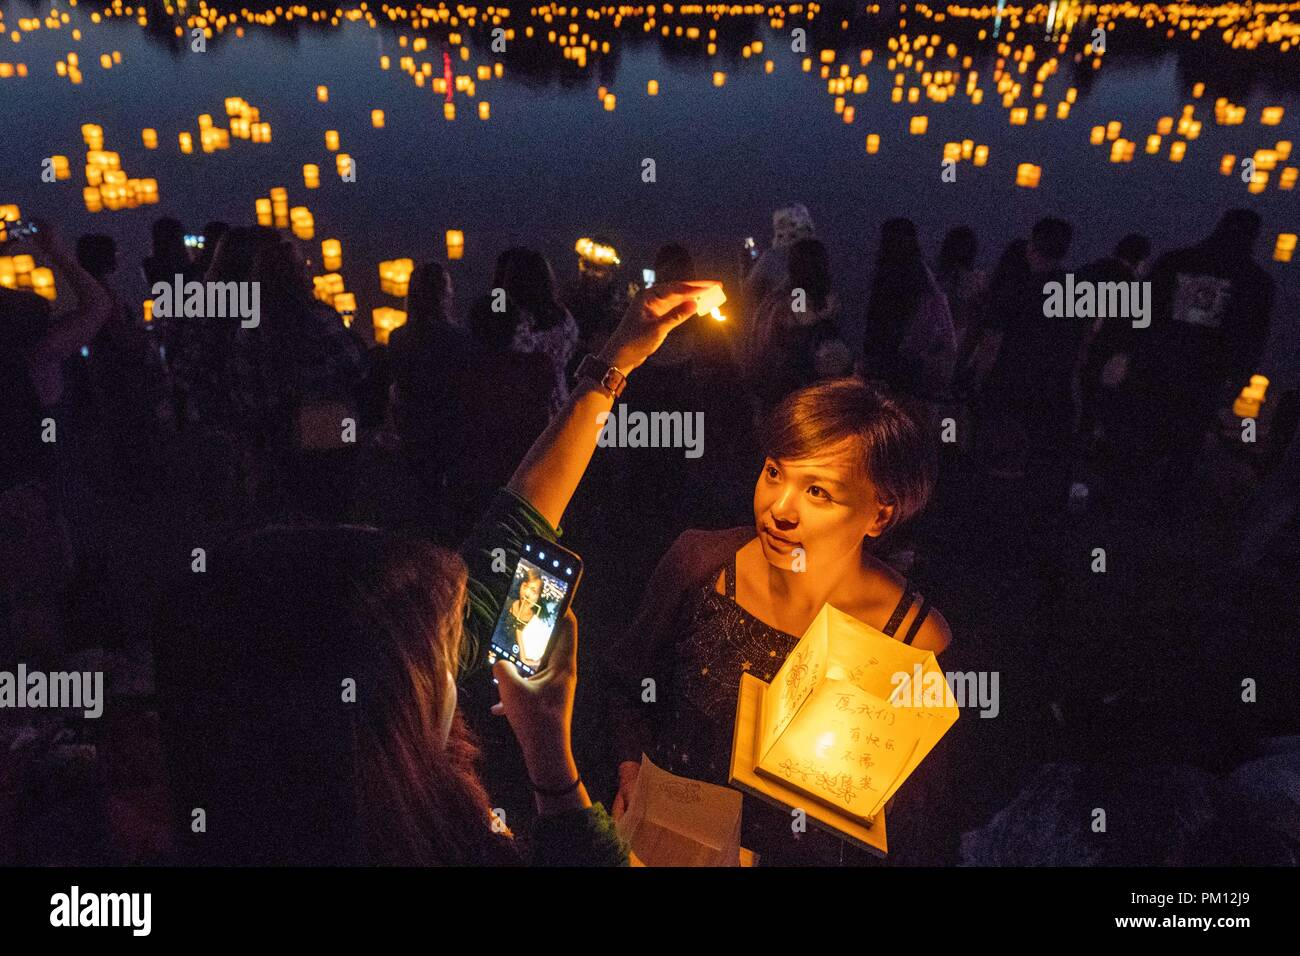 Los Angeles, USA. 15th Sep, 2018. People attend Water Lantern Festival in Los Angeles, the United States, Sept. 15, 2018. Credit: Qian Weizhong/Xinhua/Alamy Live News Stock Photo